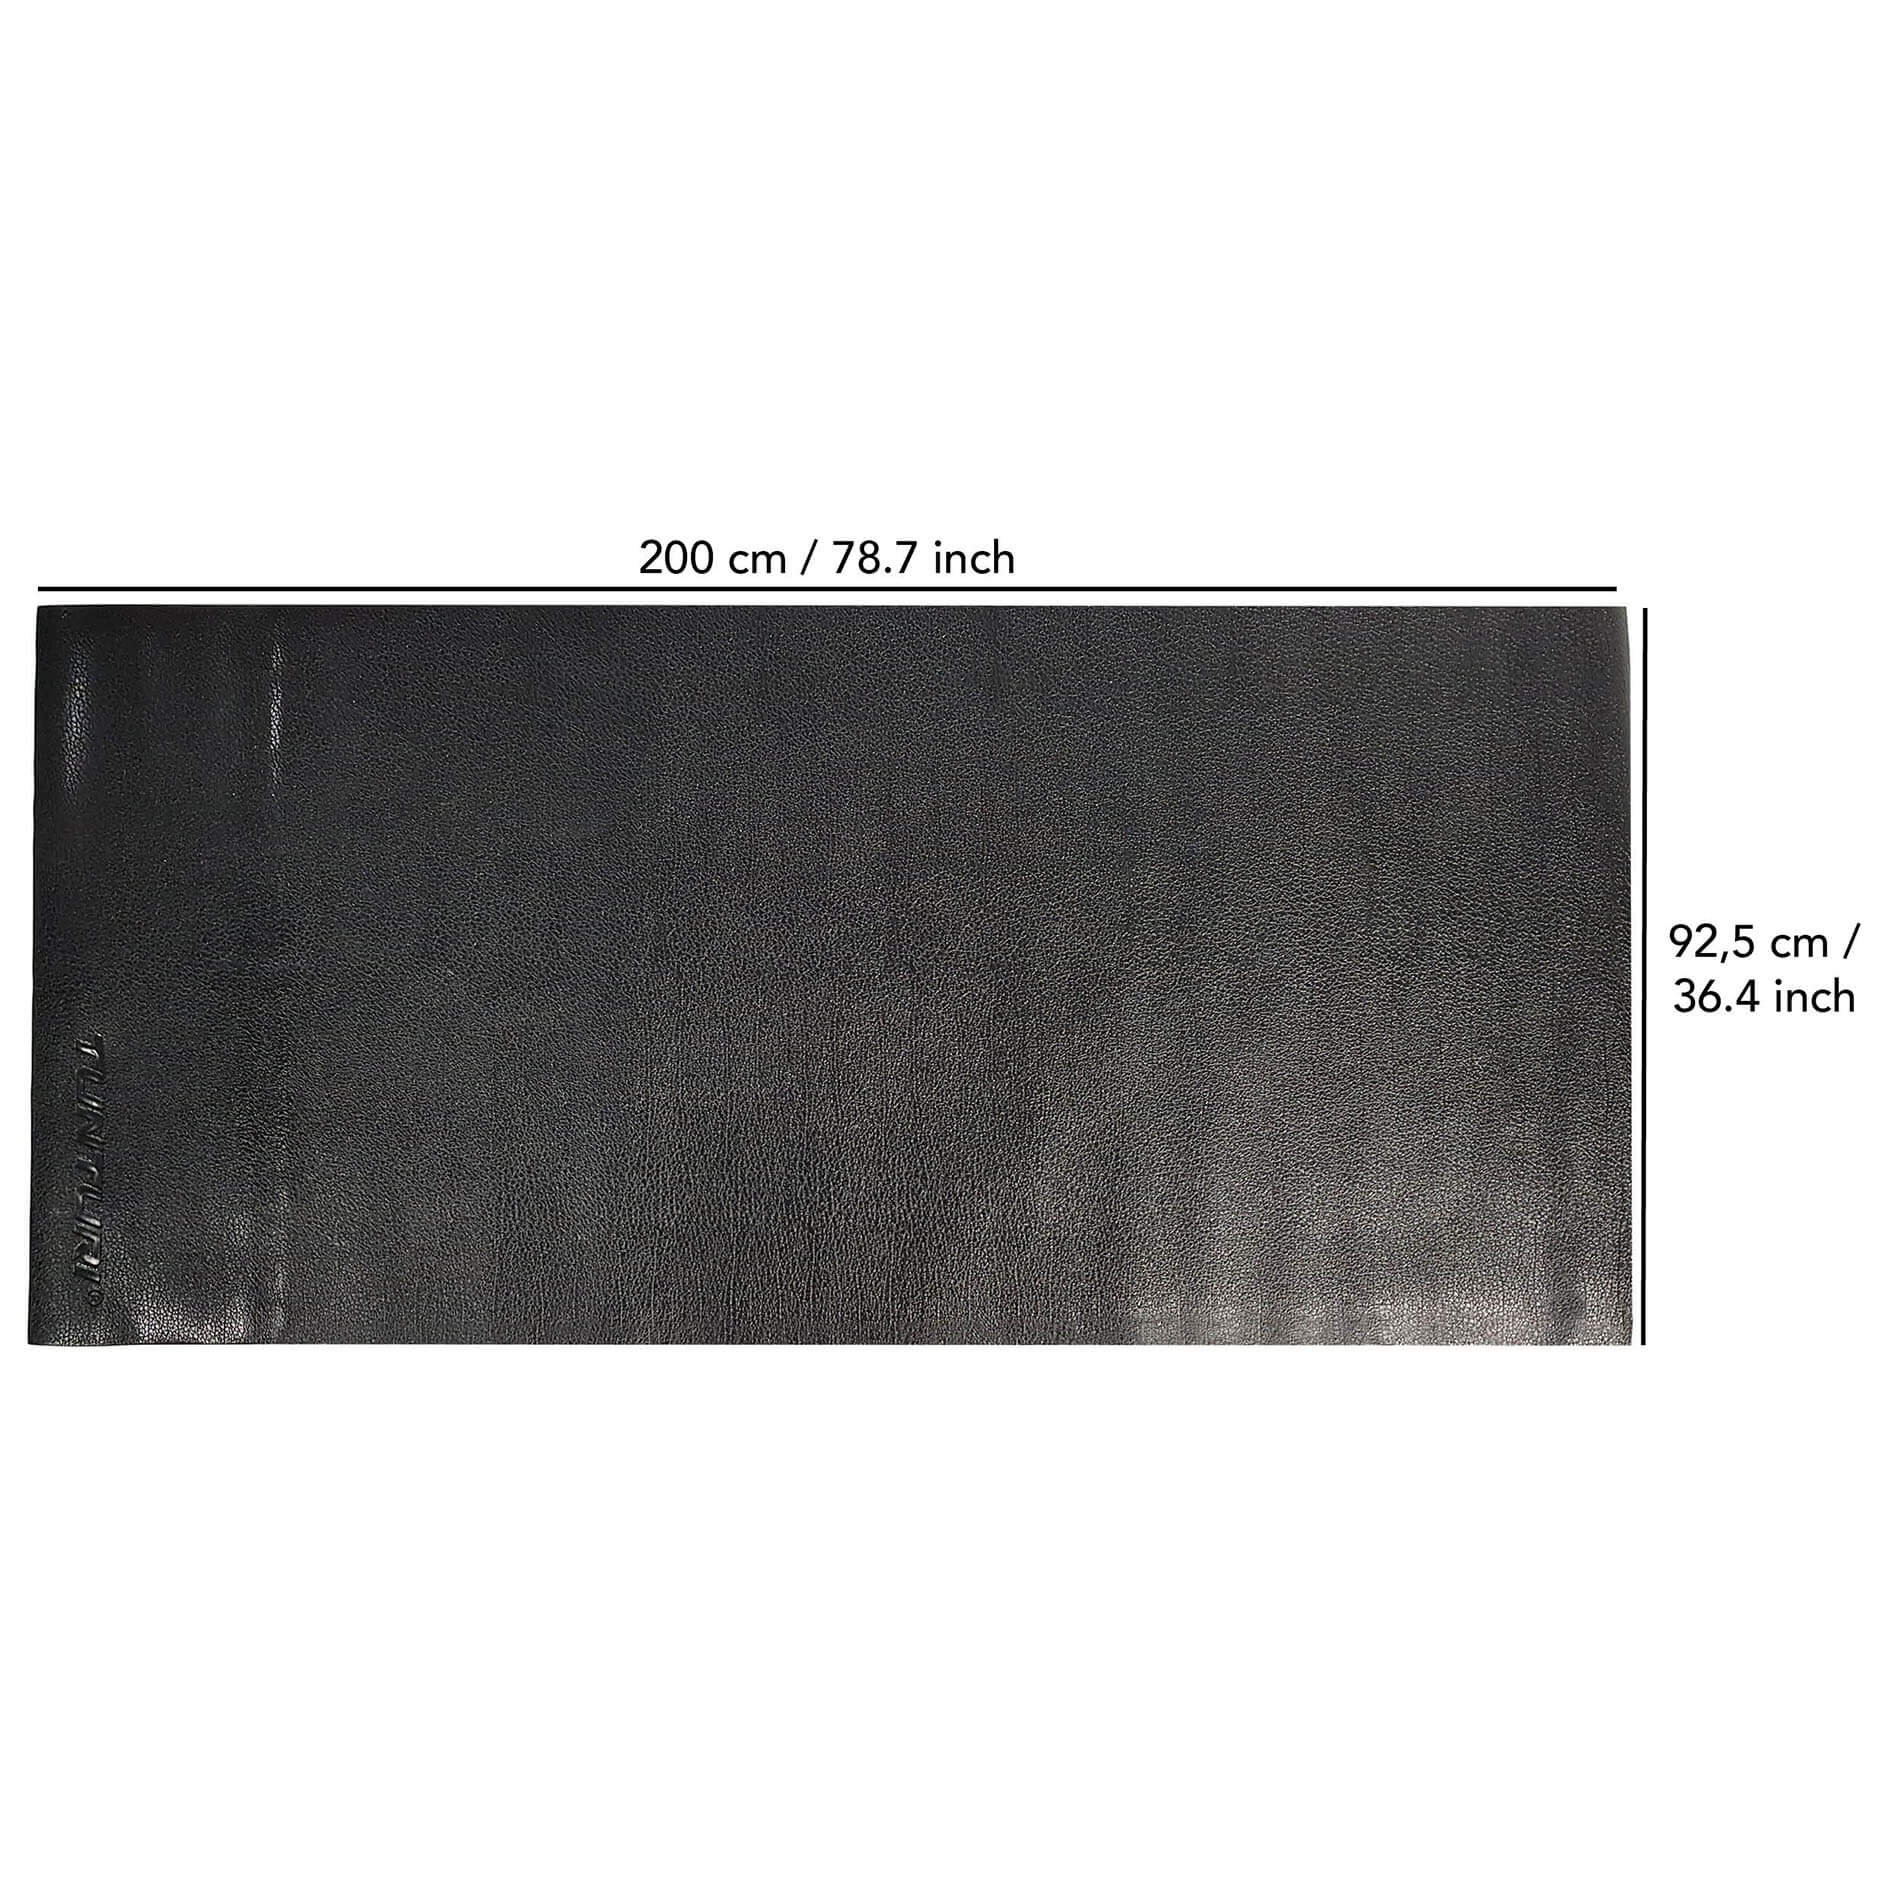 Treadmill Floor Protection Mat Set 200*92.5cm